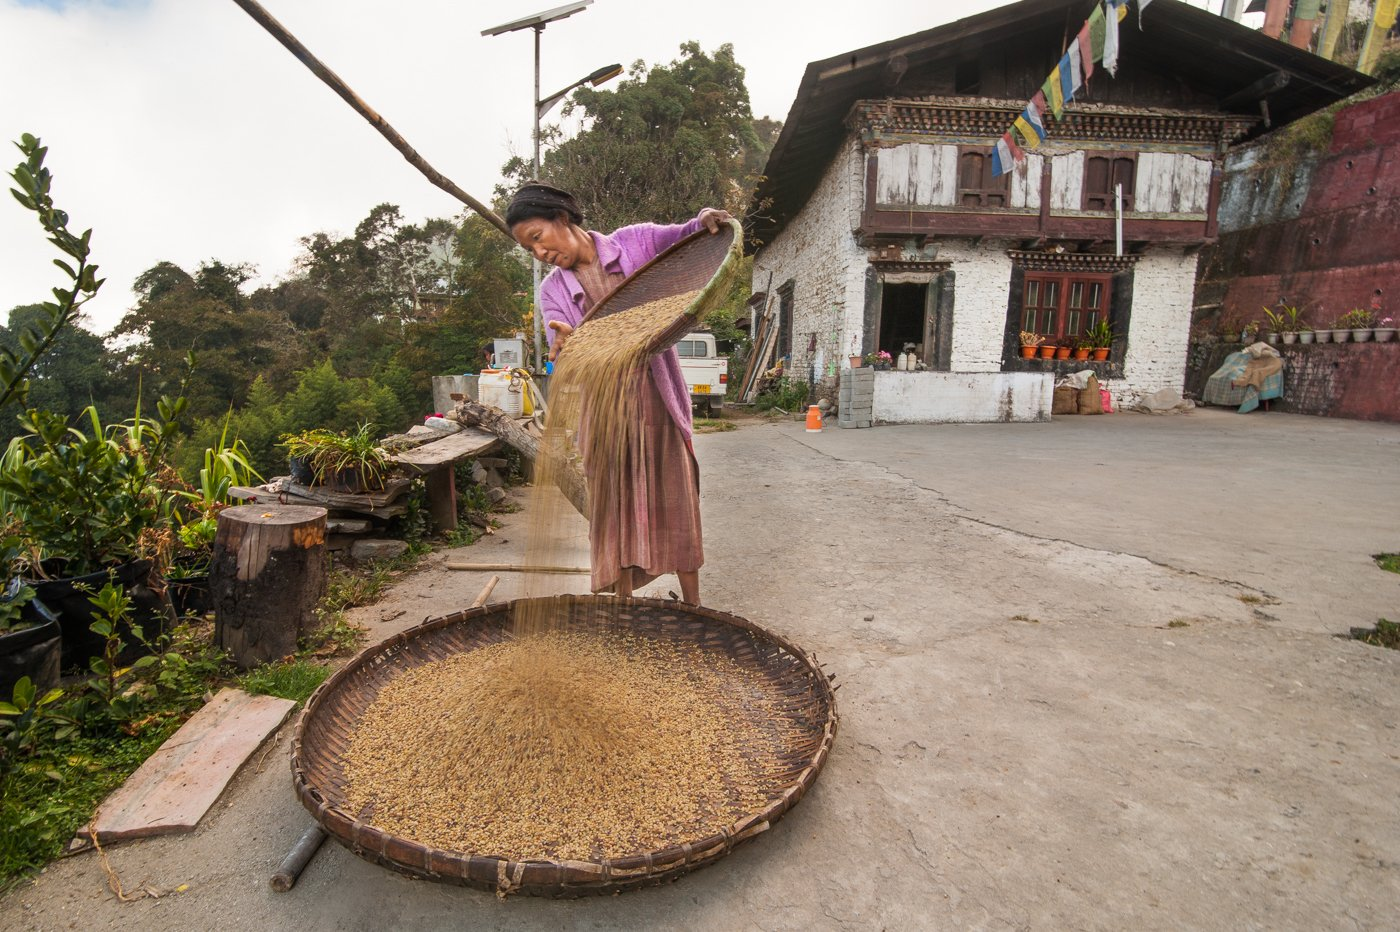 In Thembang village of West Kameng district of Arunachal Pradesh, Jangmu lhopa, a Monpa, is drying baby corn seeds. This crop is a major source of income for the tribe. Credit: Ritayan Mukherjee